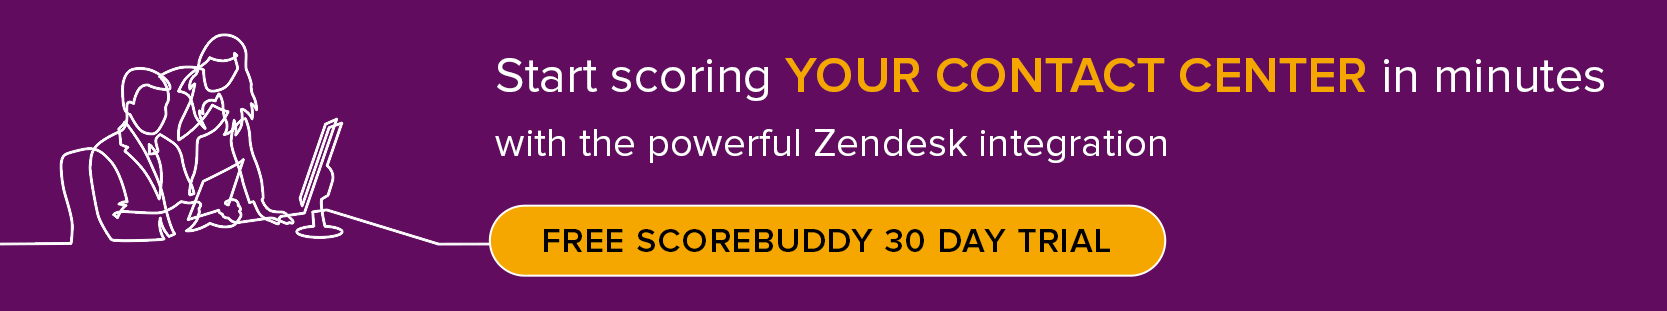 Zendesk integration for improved quality assurance in the call center